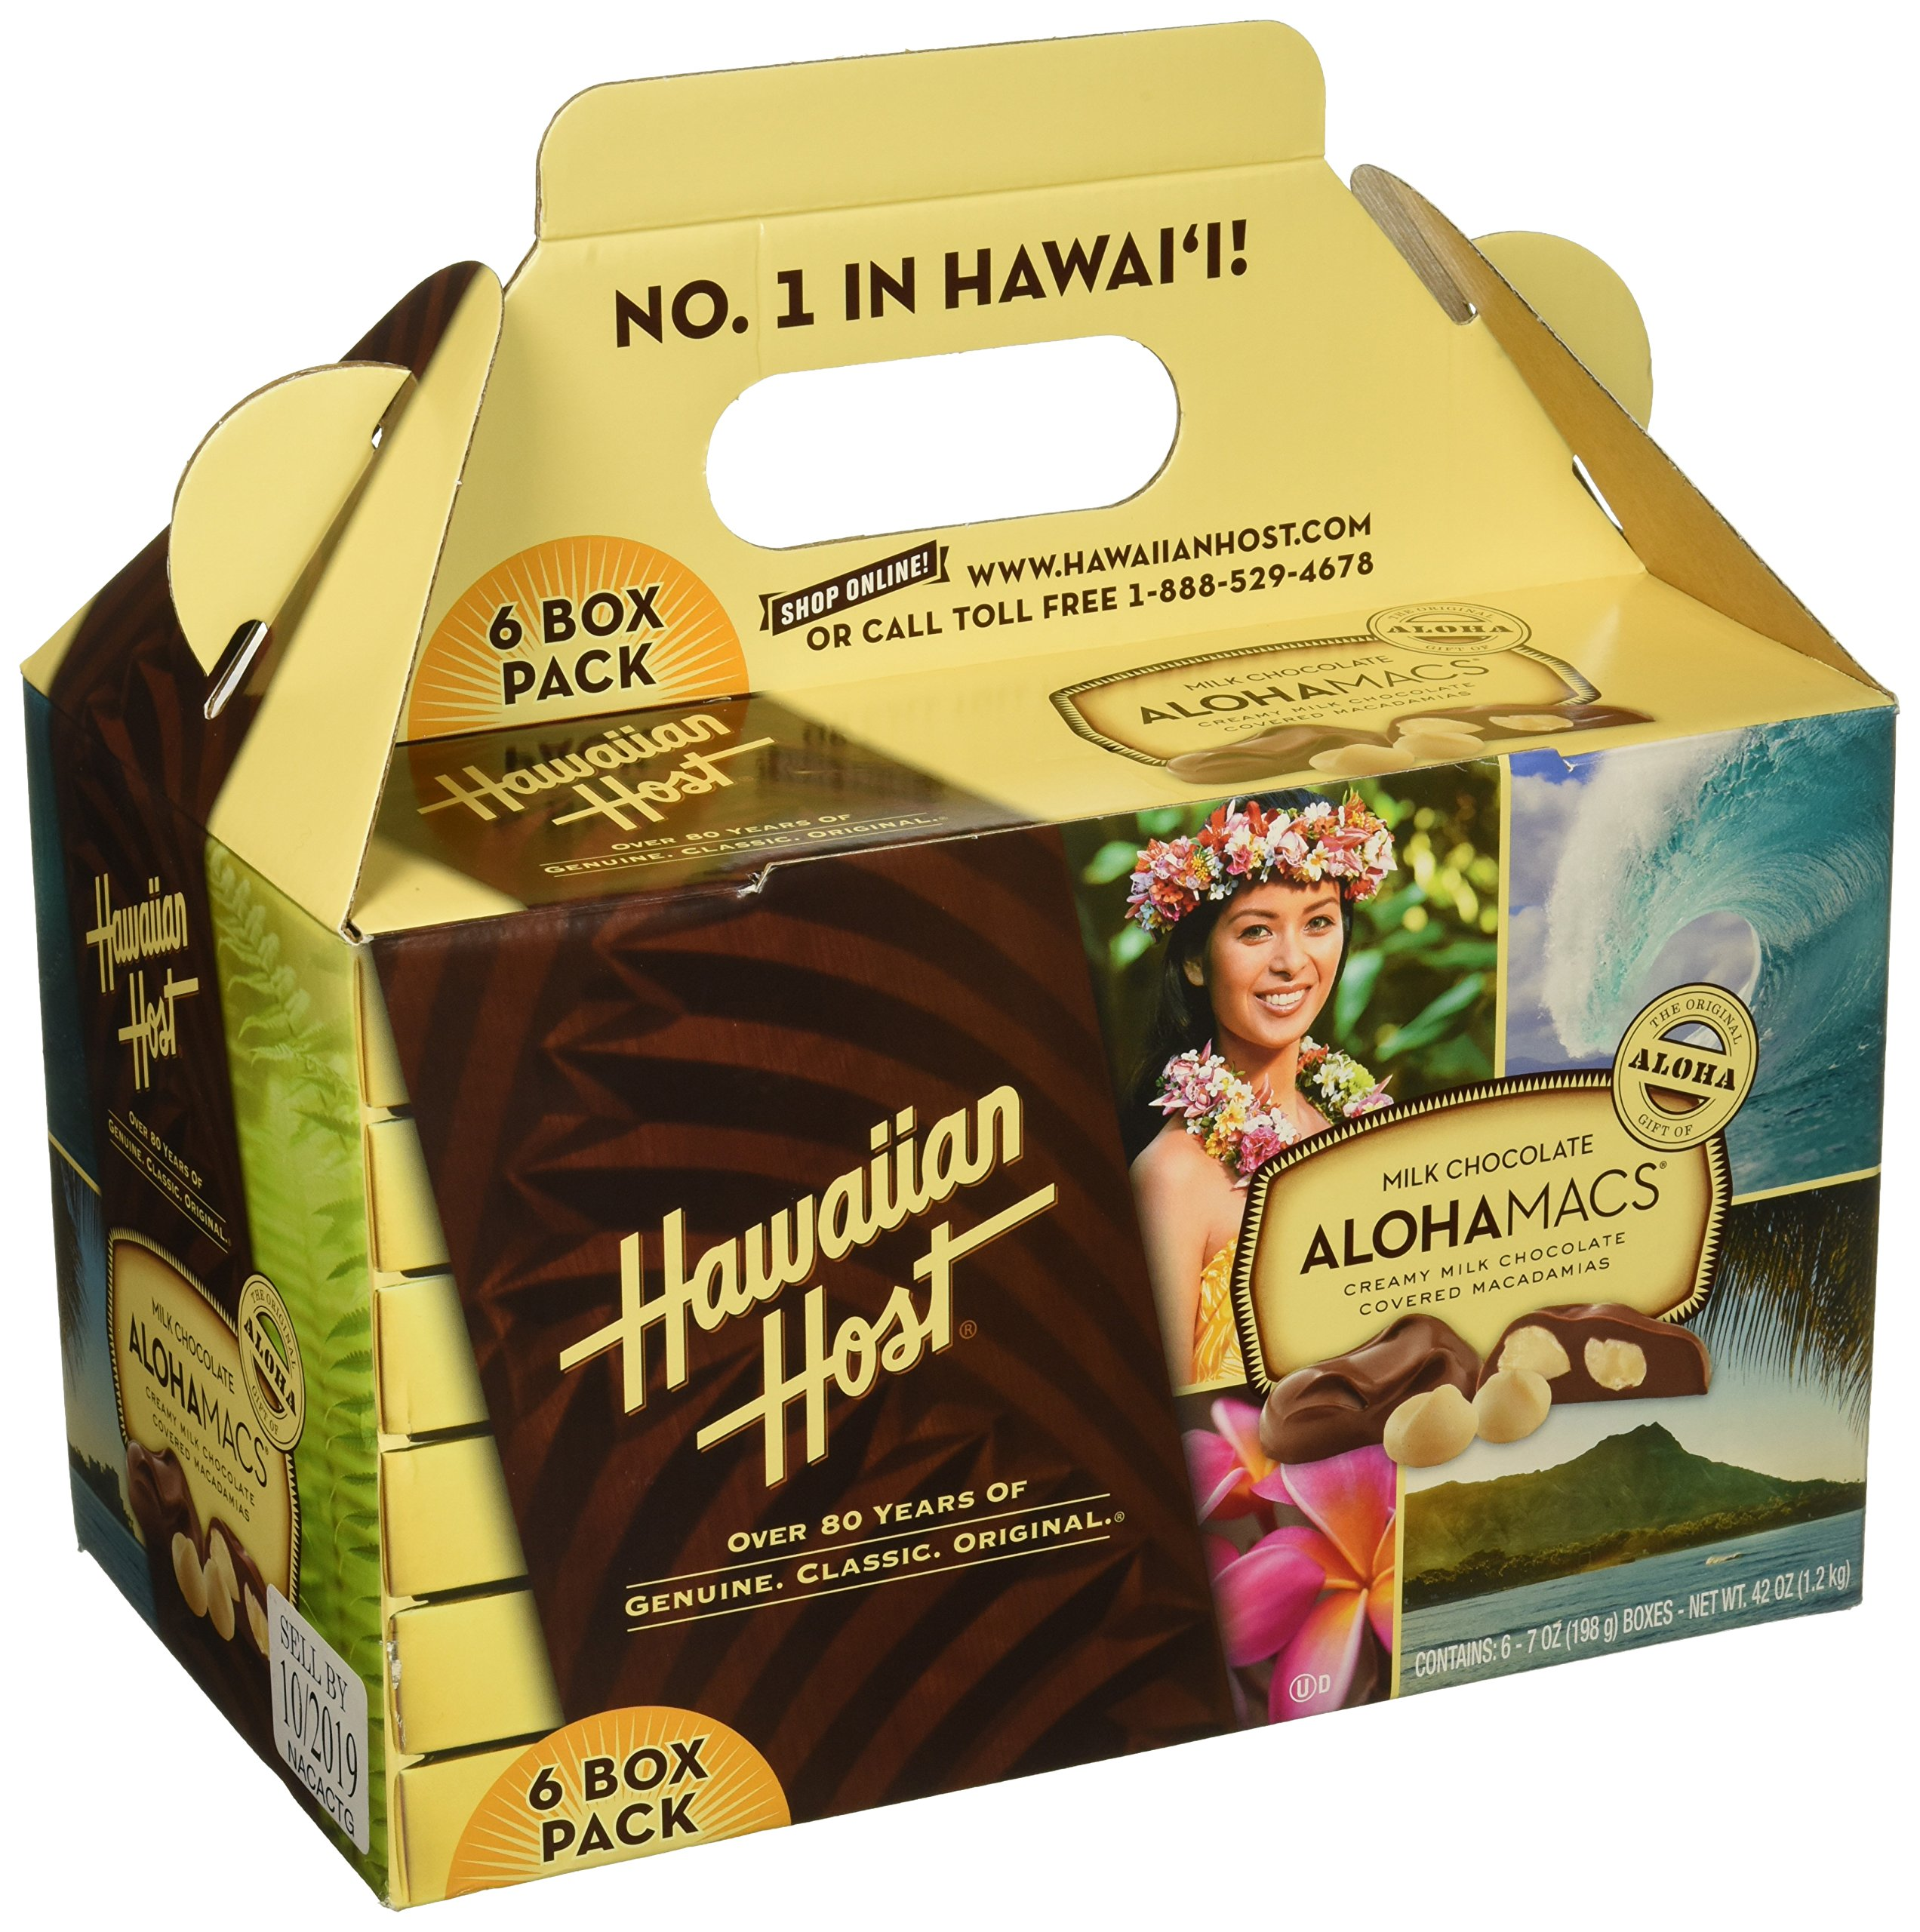 Hawaiian Host Alohamacs Milk Chocolate The Original Chocolate Covered Macadamia Nut, 42 Ounce by Hawaiian Host (Image #1)